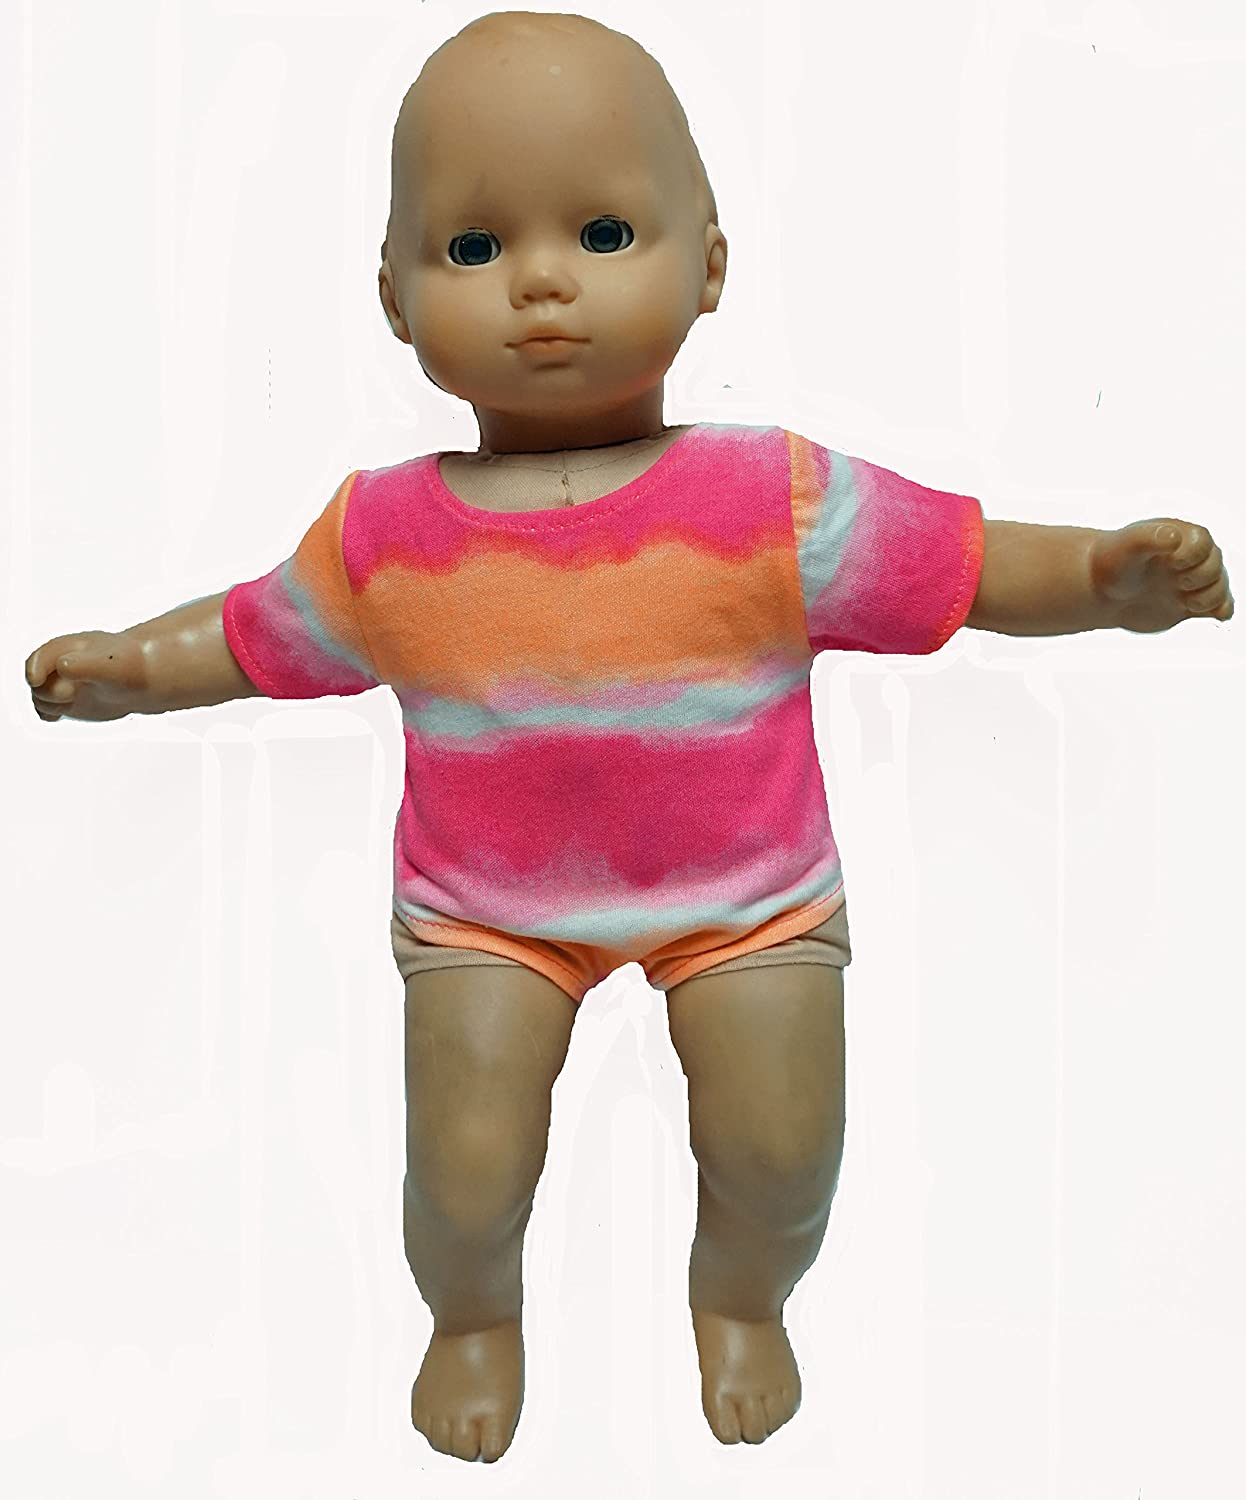 Amazon.com: Doll Clothes Superstore Versatile Bathing Suit Fits Baby Dolls, Cabbage  Patch and 18 Inch Girl Doll: Toys & Games